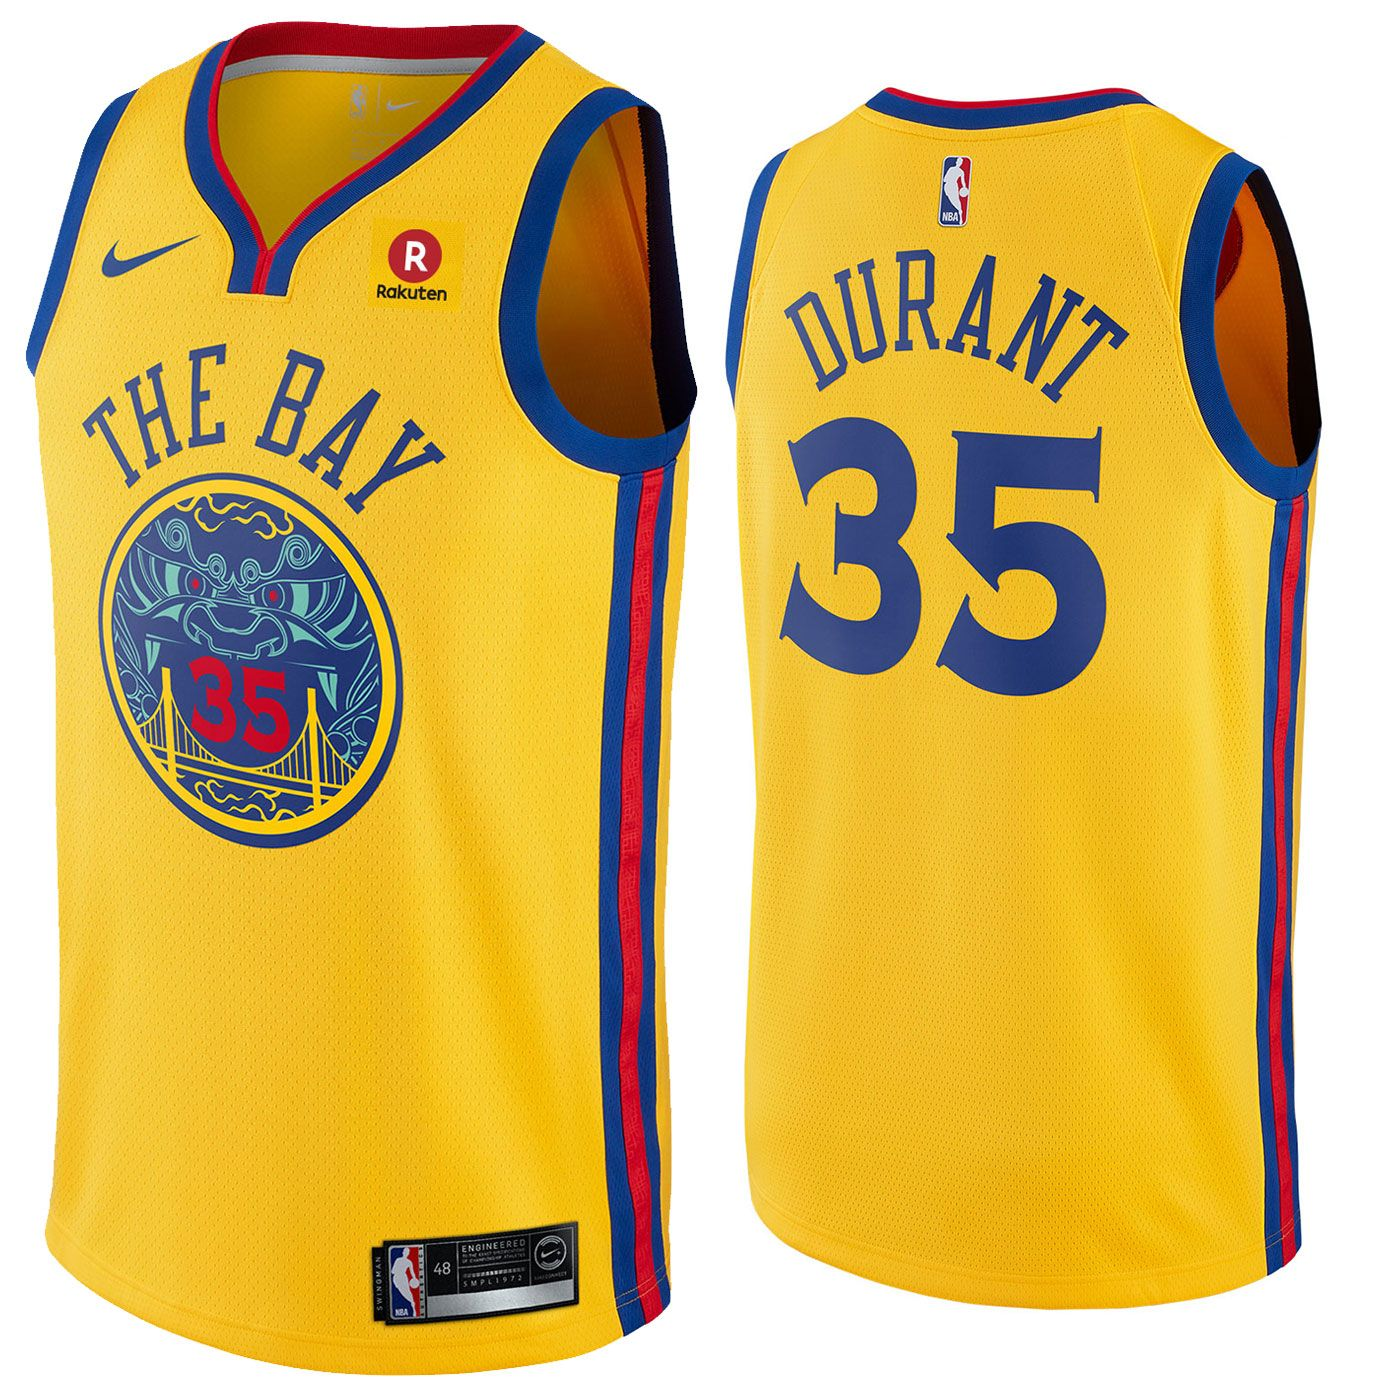 purchase cheap 4bd07 ddaac Golden State Warriors Nike Dri-FIT Men s Chinese Heritage Kevin Durant  35  Swingman City Edition Jersey - Gold